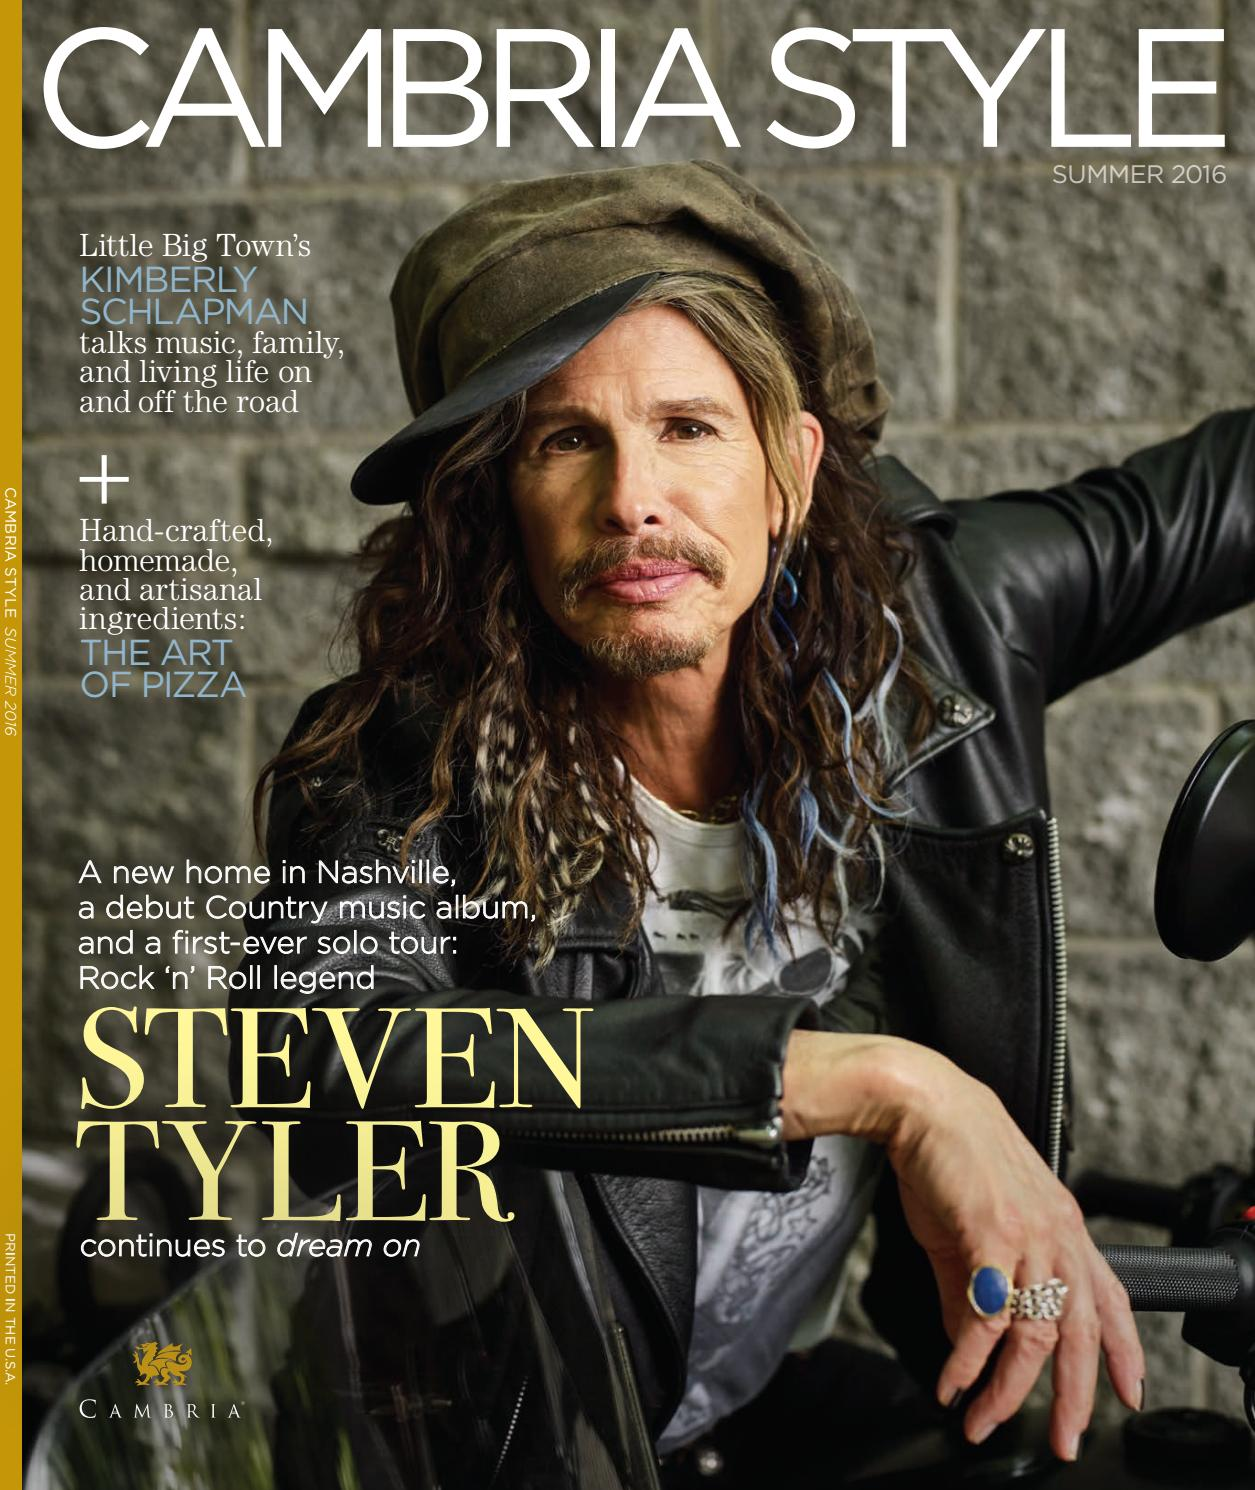 Steven Tyler On The Cover Of Cambria Style Summer 2016